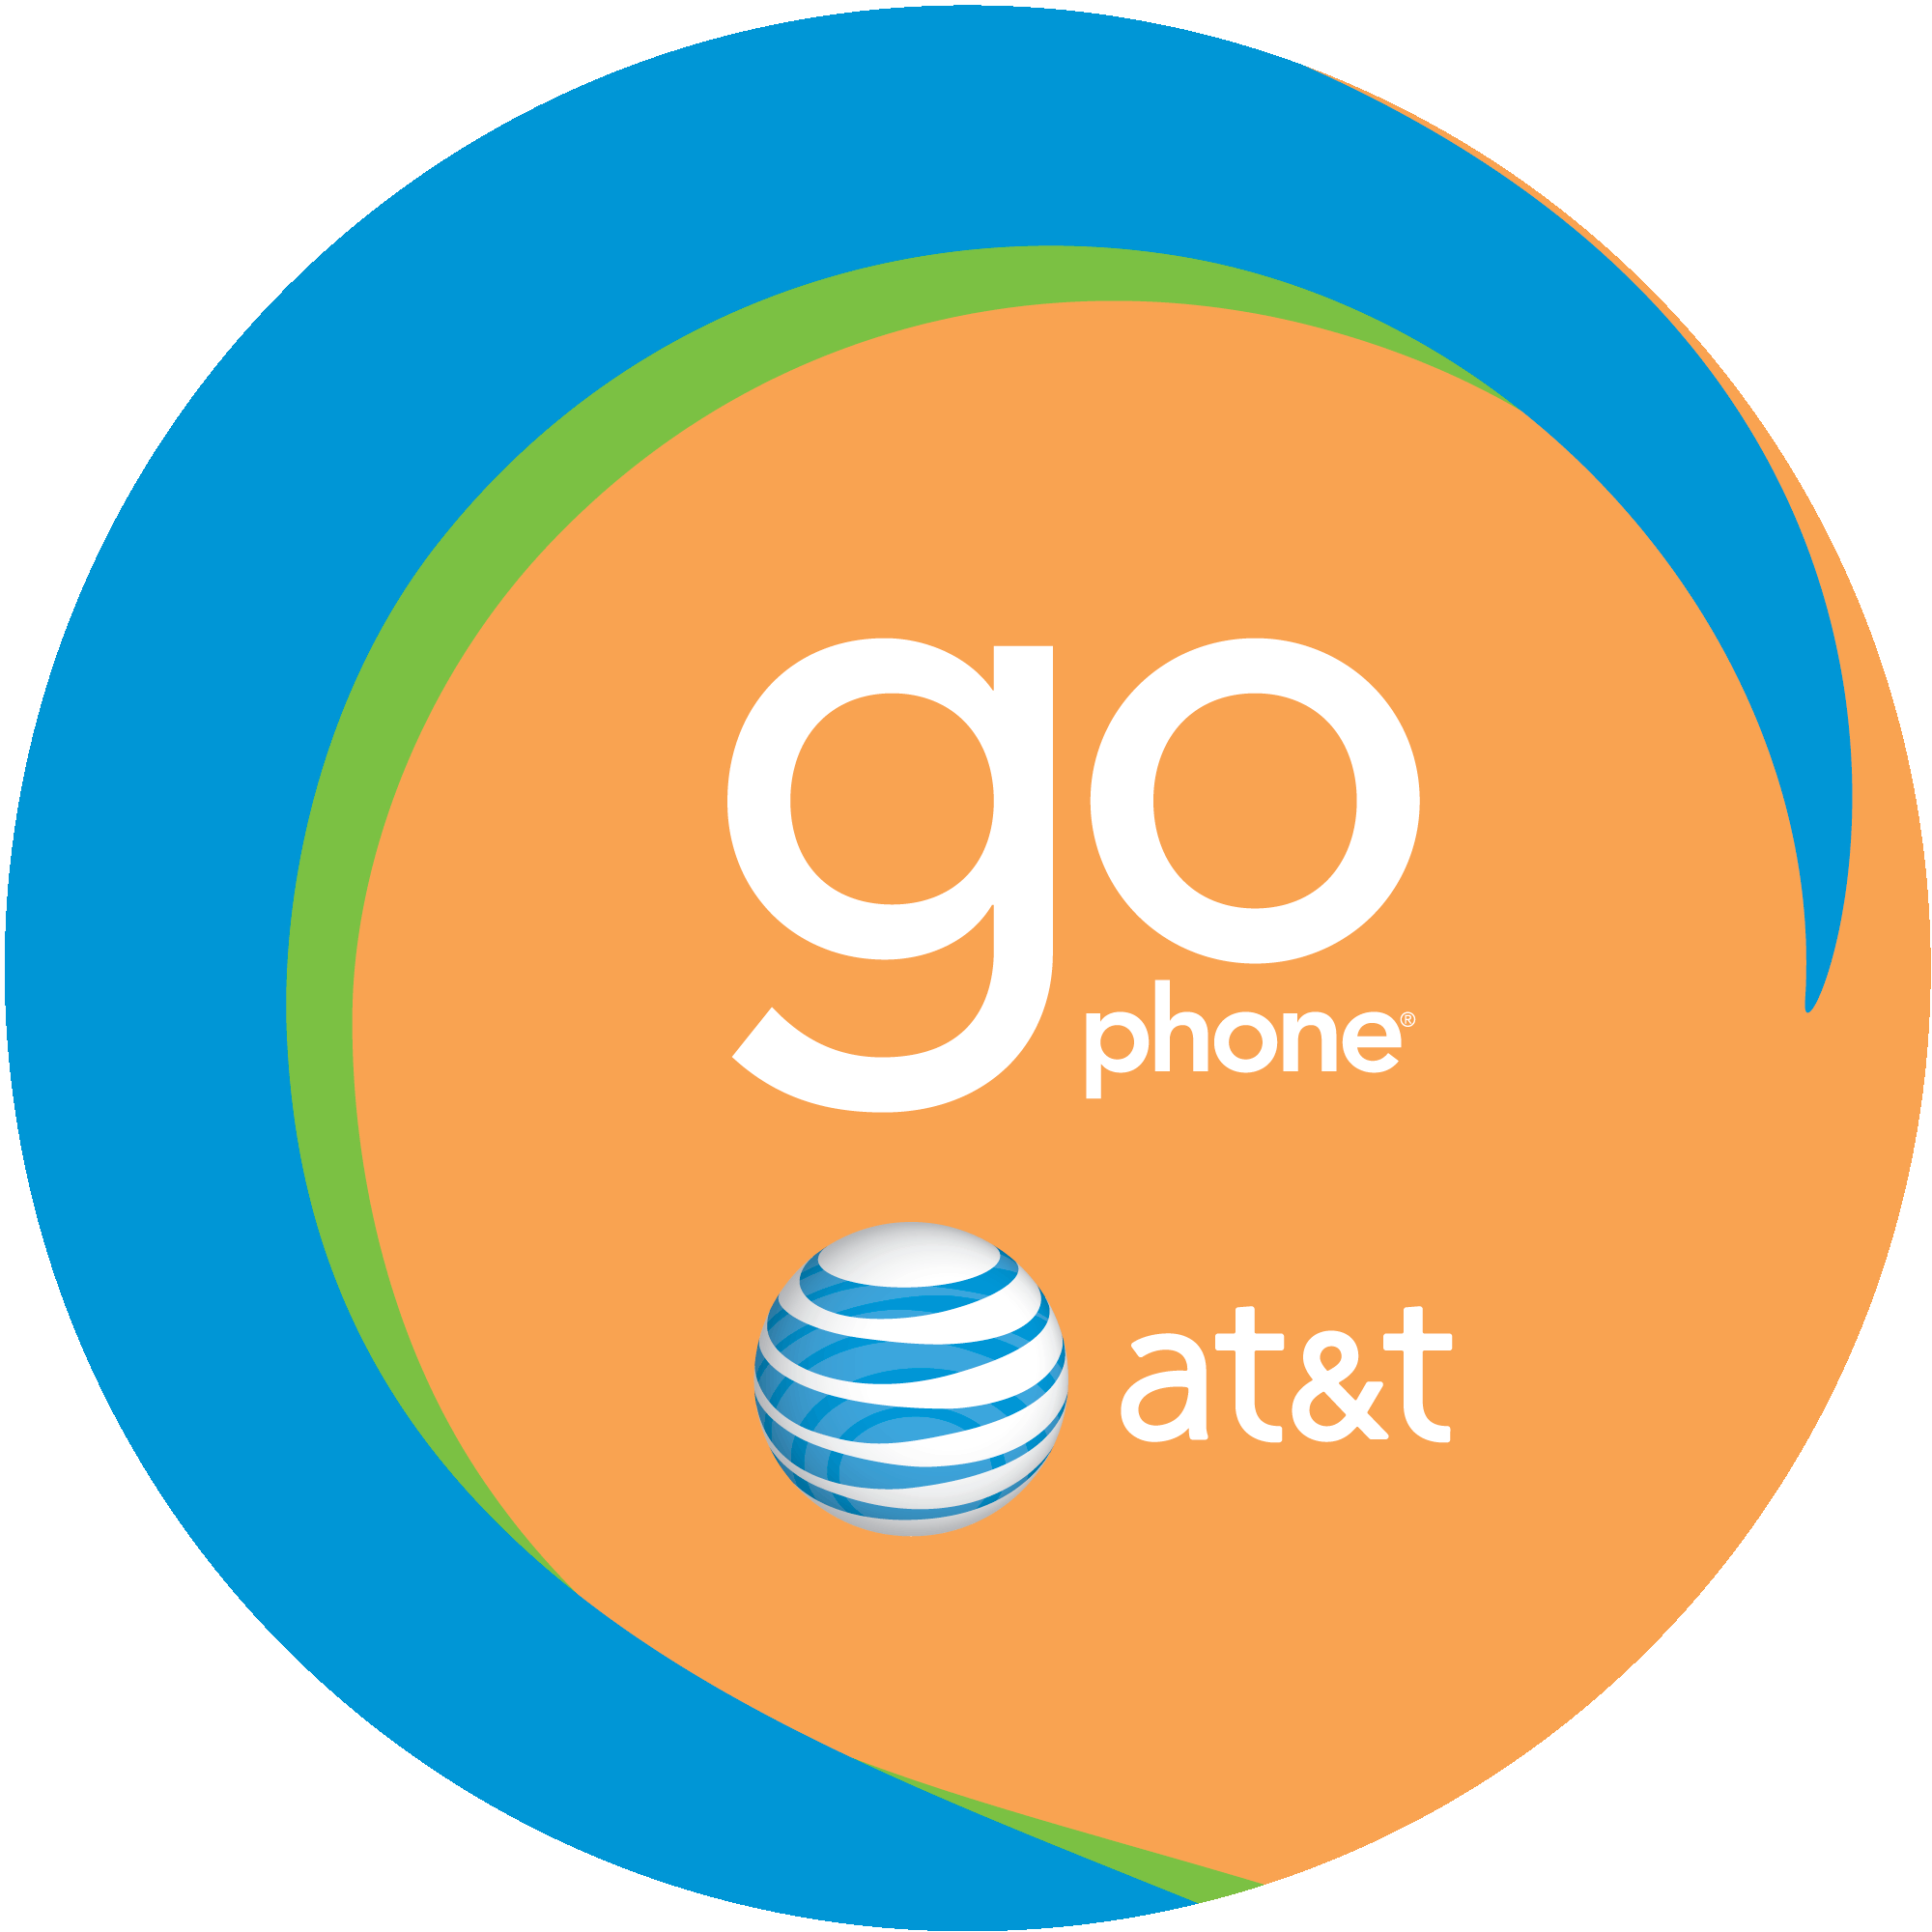 At&t wireless logo png. At t making changes